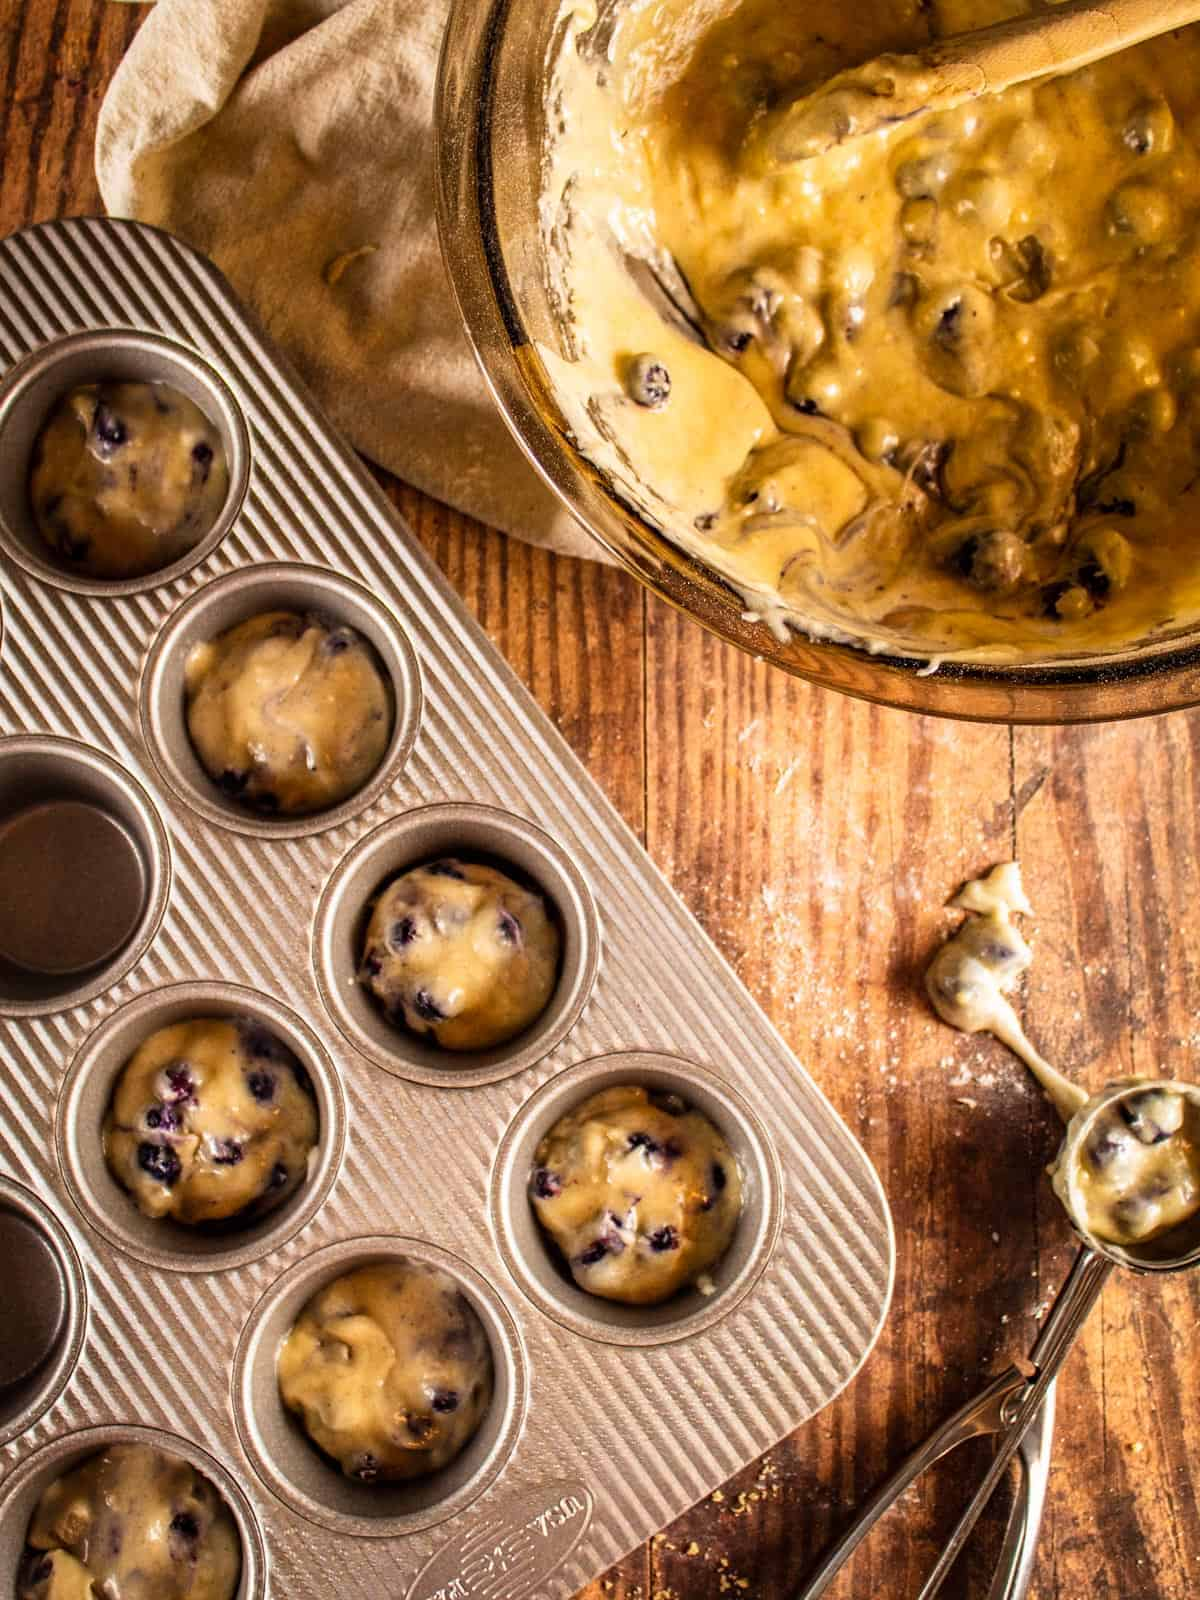 muffin tin with blueberry muffin batter in it